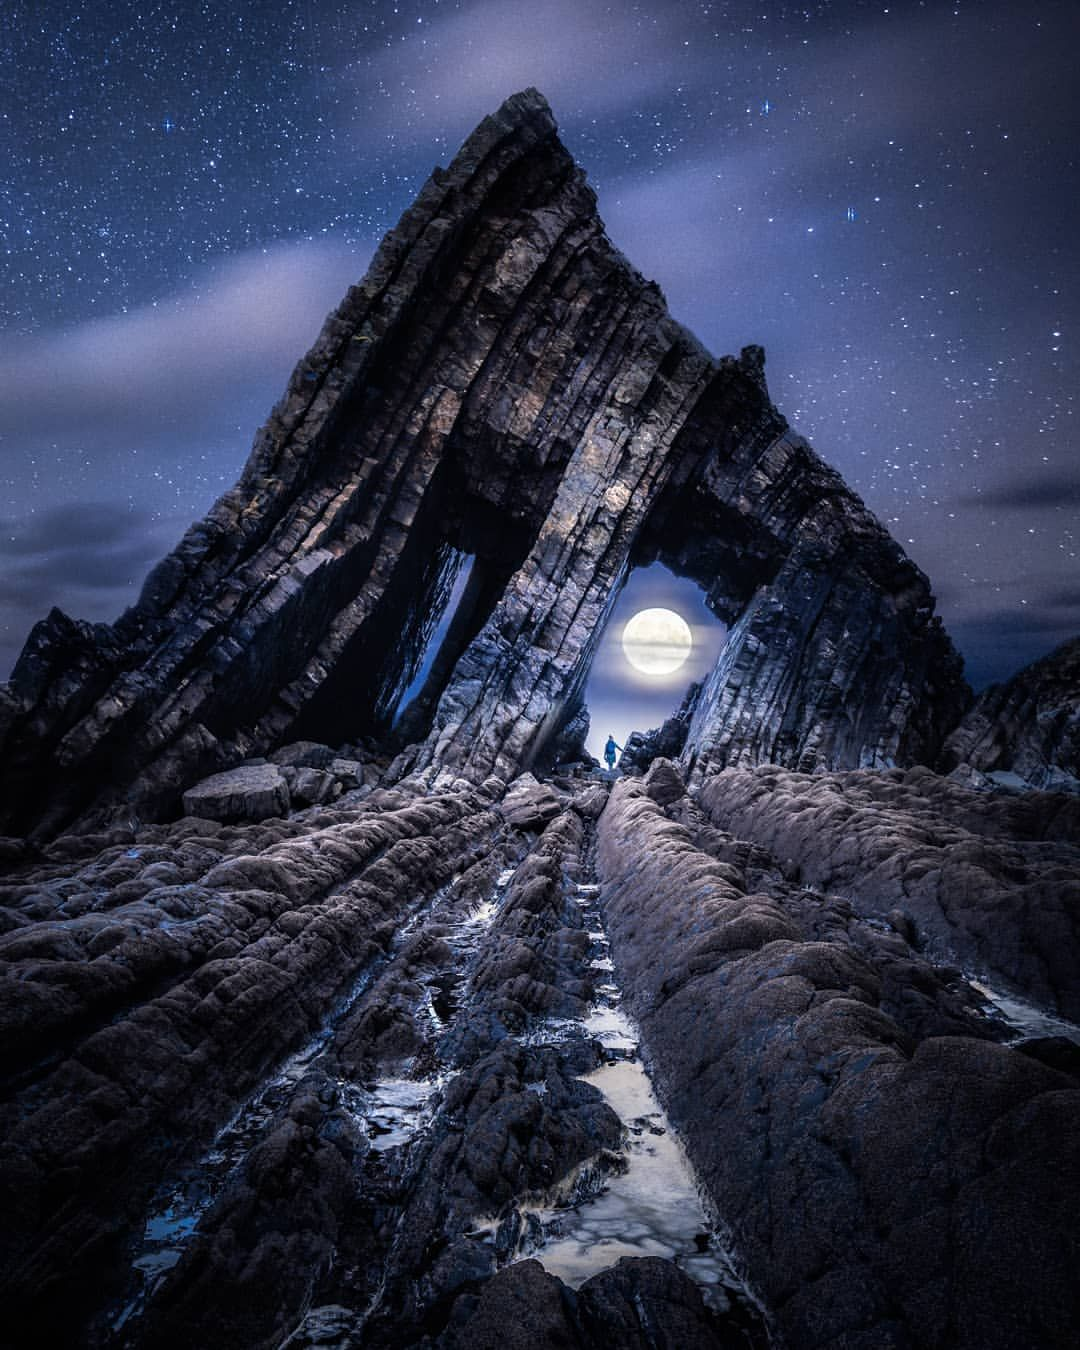 Beautiful Night Sky And Landscape Photography By Aaron Jenkin Photography Landscape Nig Beautiful Night Sky Amazing Nature Photography Landscape Photography